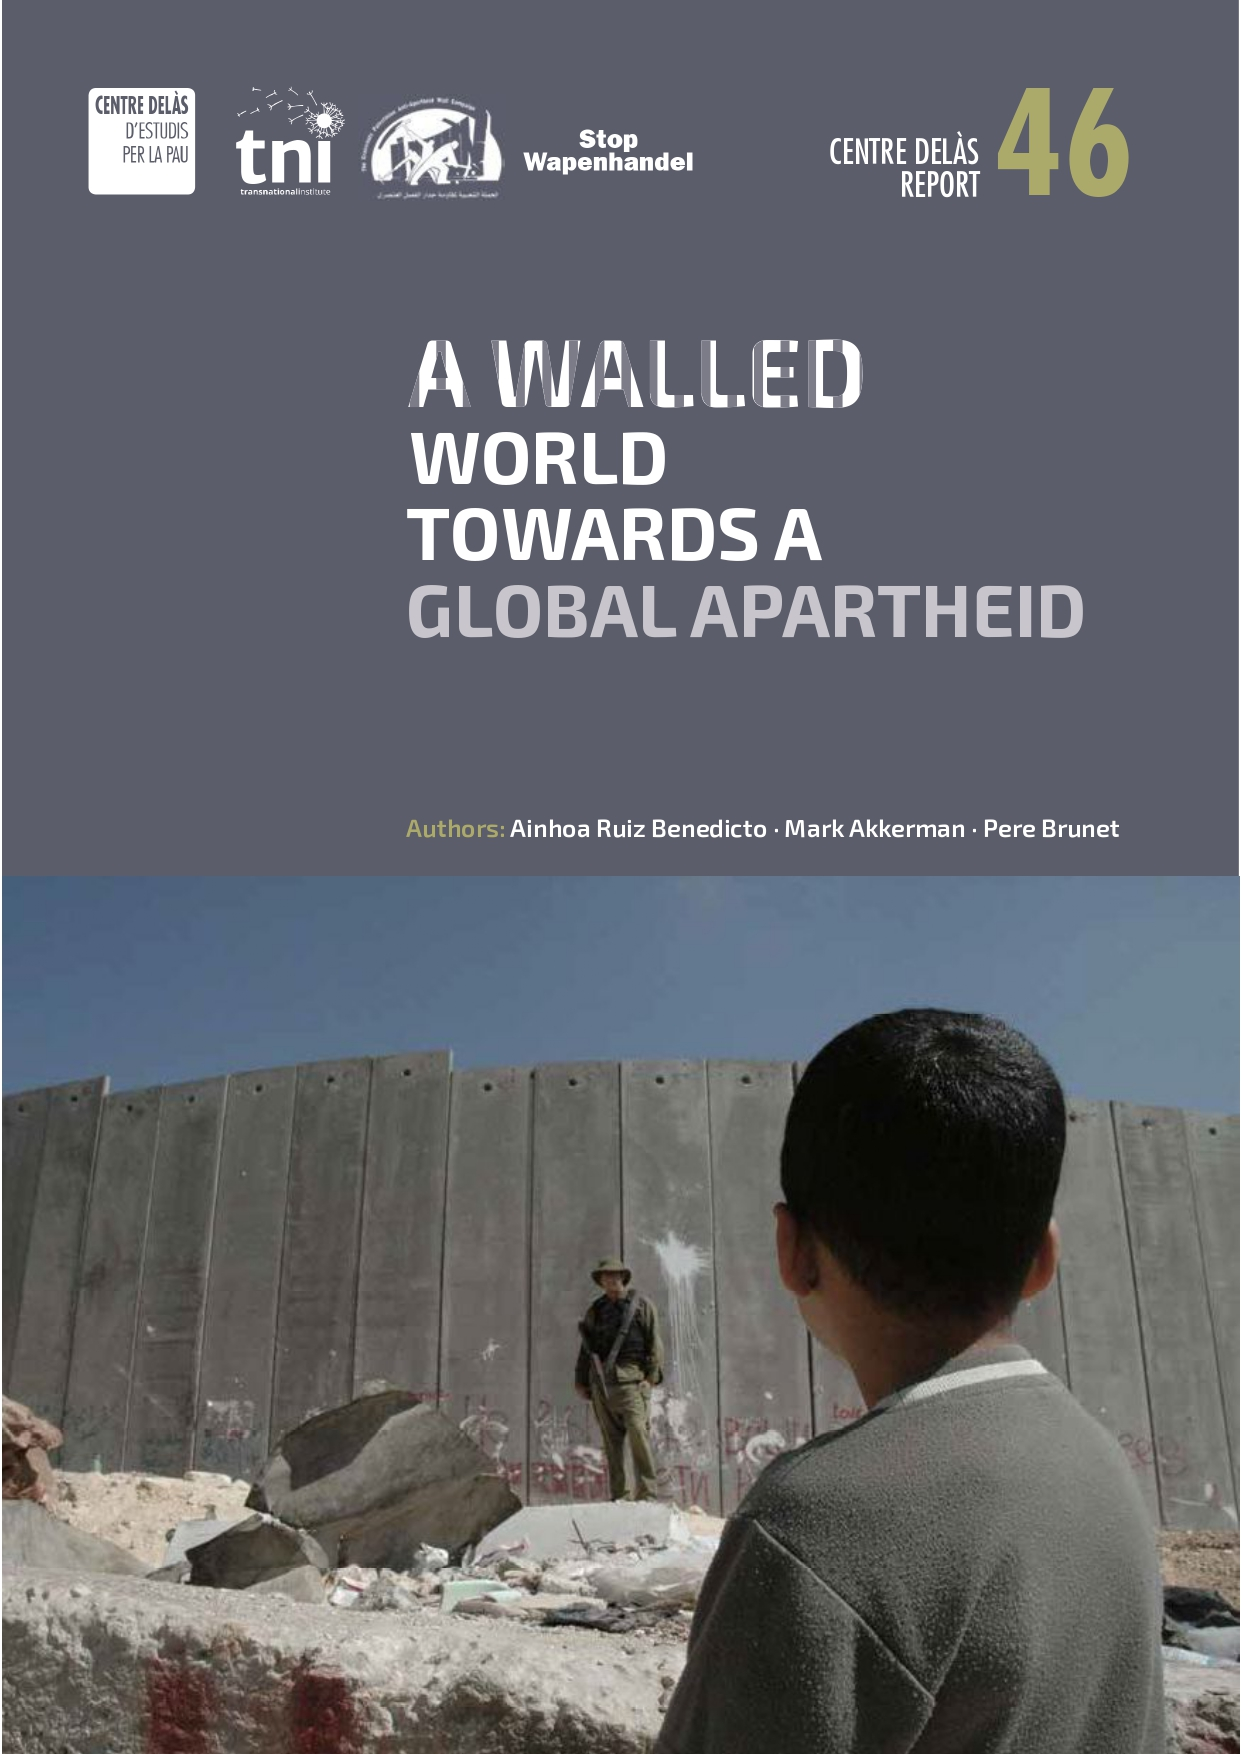 """Report 46: """"A Walled World, towards a Global Apartheid"""""""